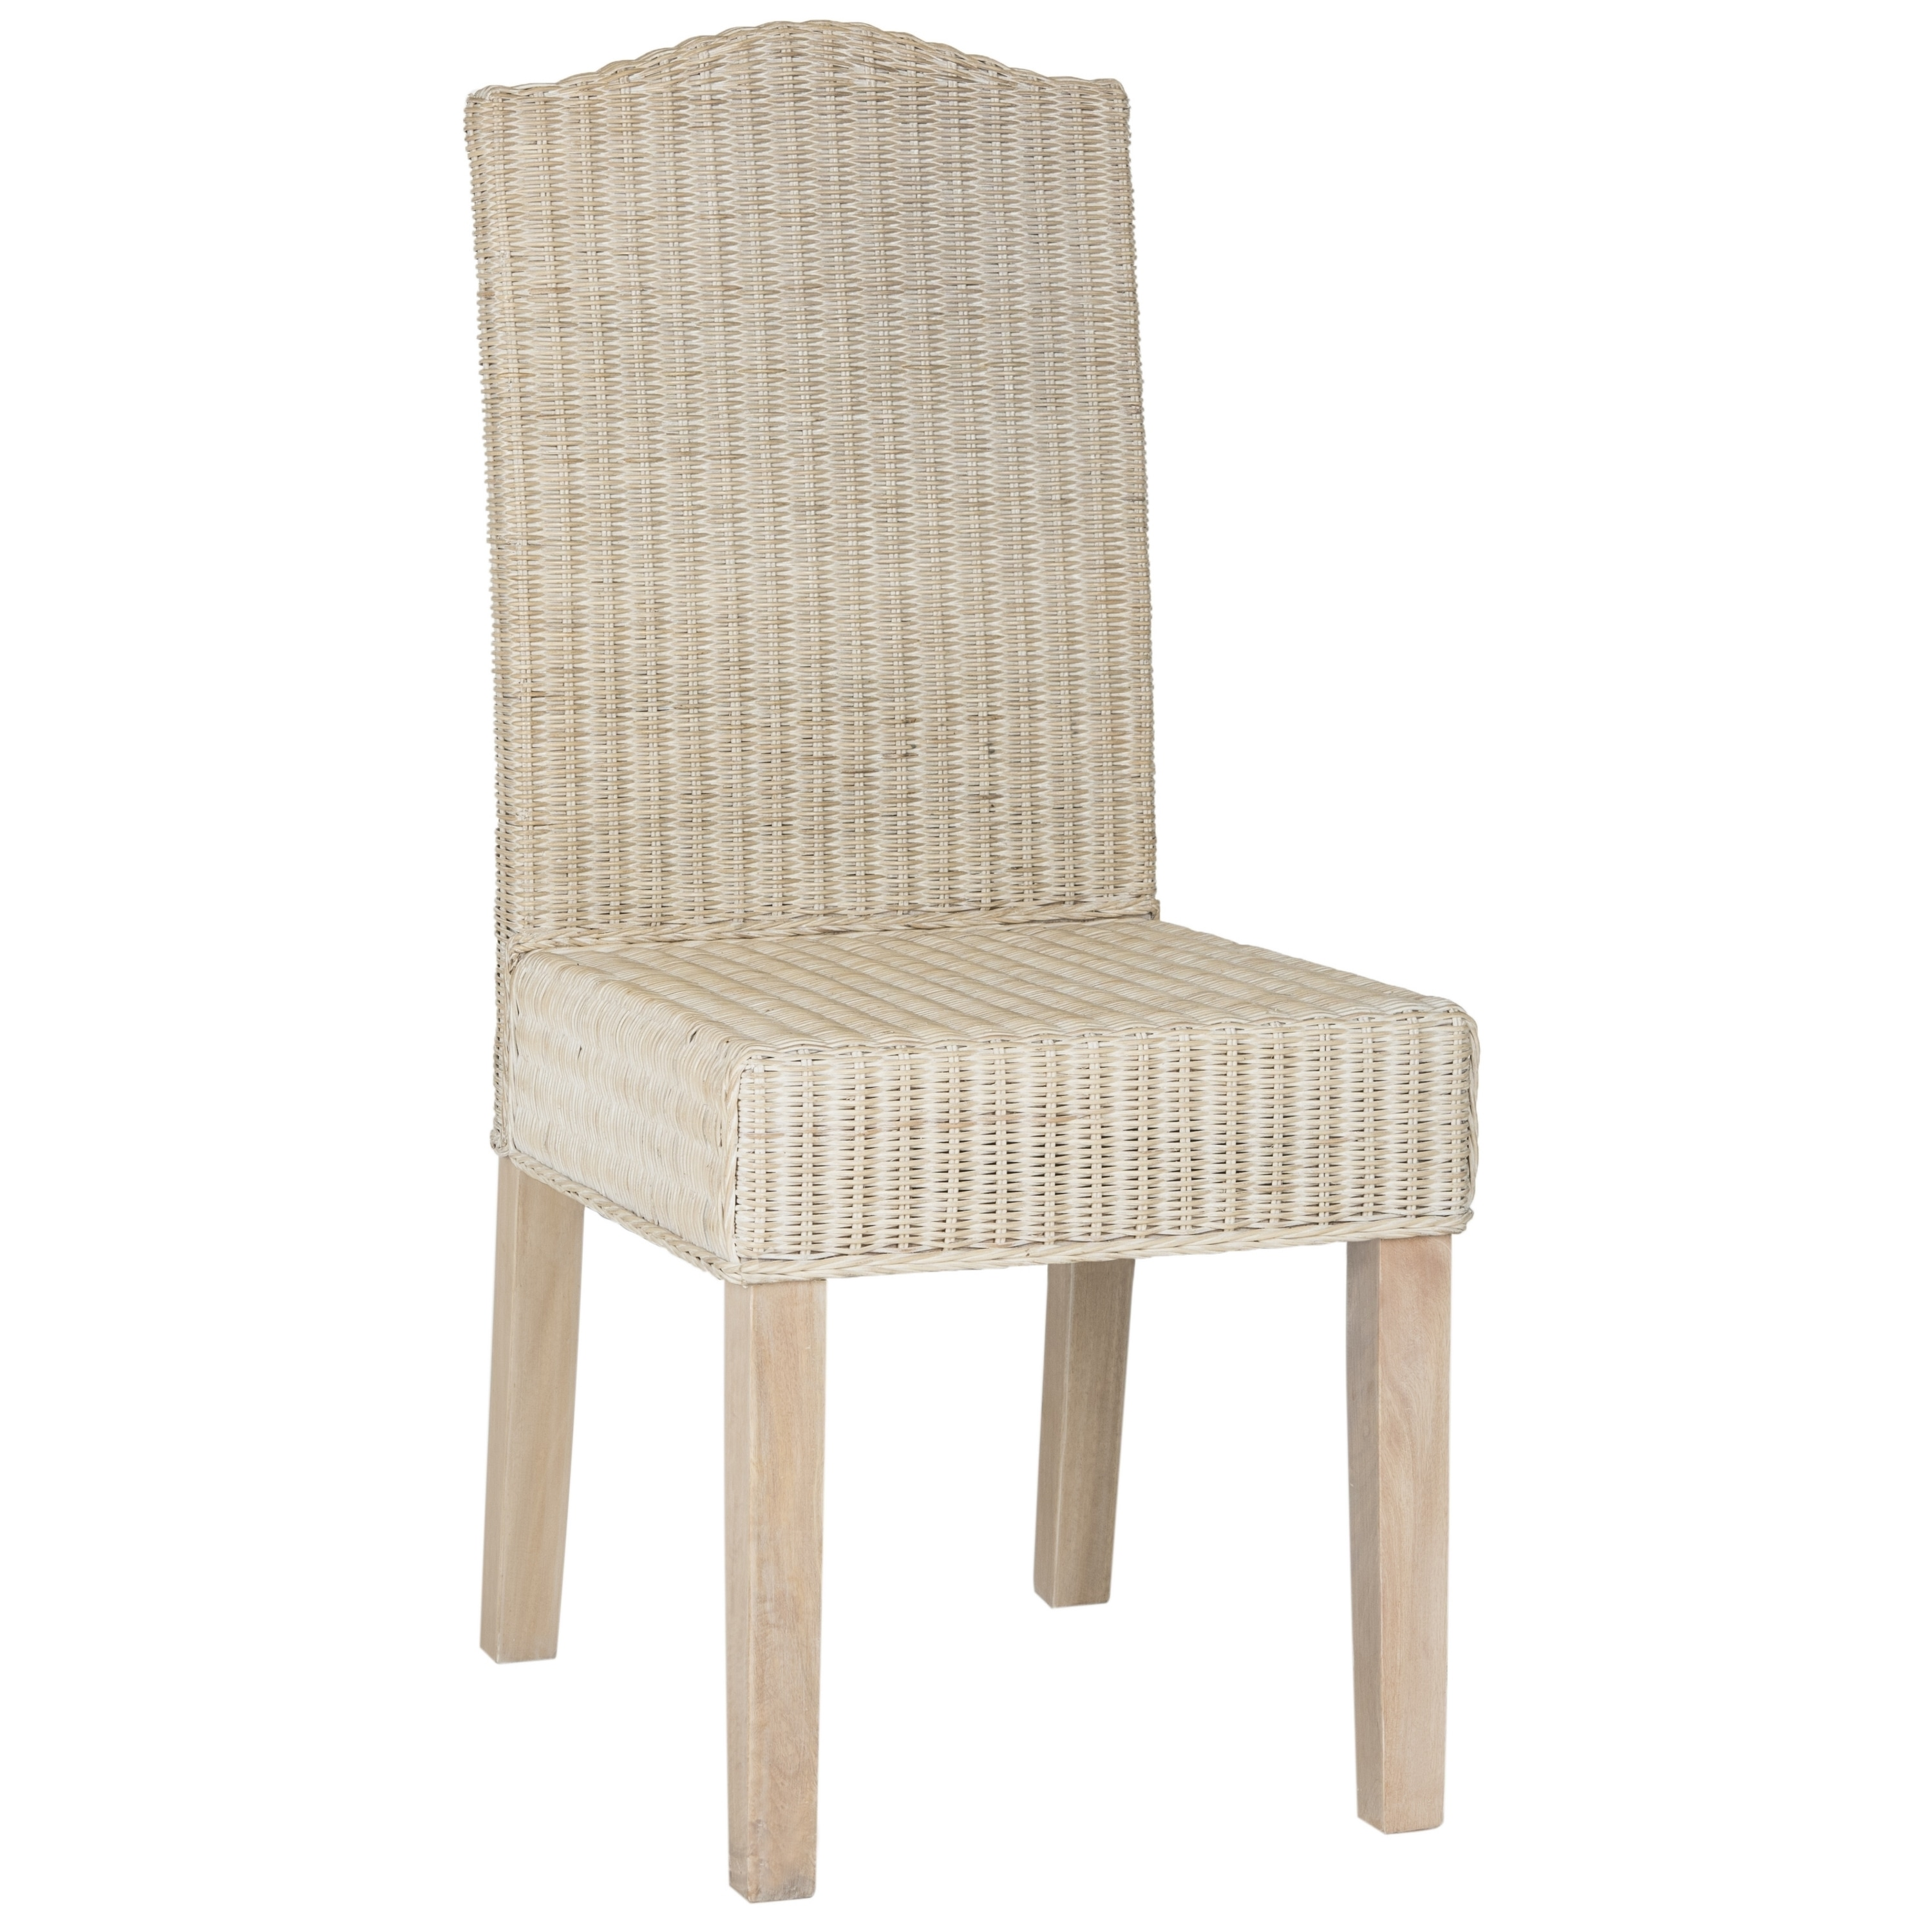 Safavieh Dining Rural Woven Odette White Washed Wicker Chairs Set Of 2 On Free Shipping Today 10856993